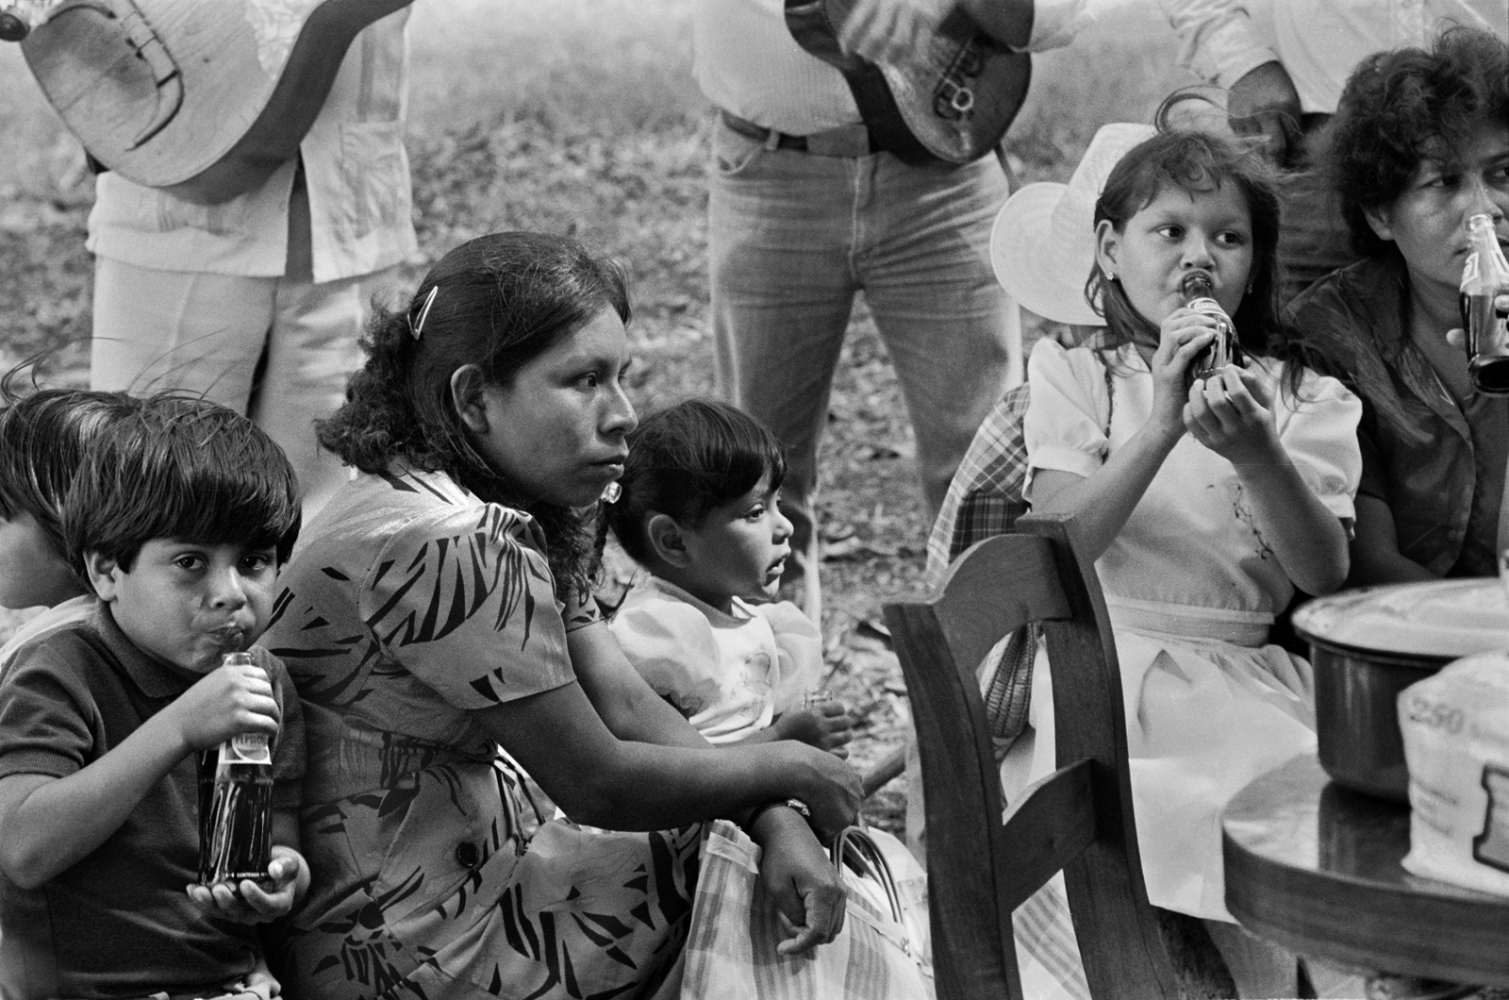 Not that Mexicans feast every day, but they do like to celebrate and make music every chance they get. Rancho Bejuco, Ozuluama, Ver, 1979 ©Sylvia de Swaan